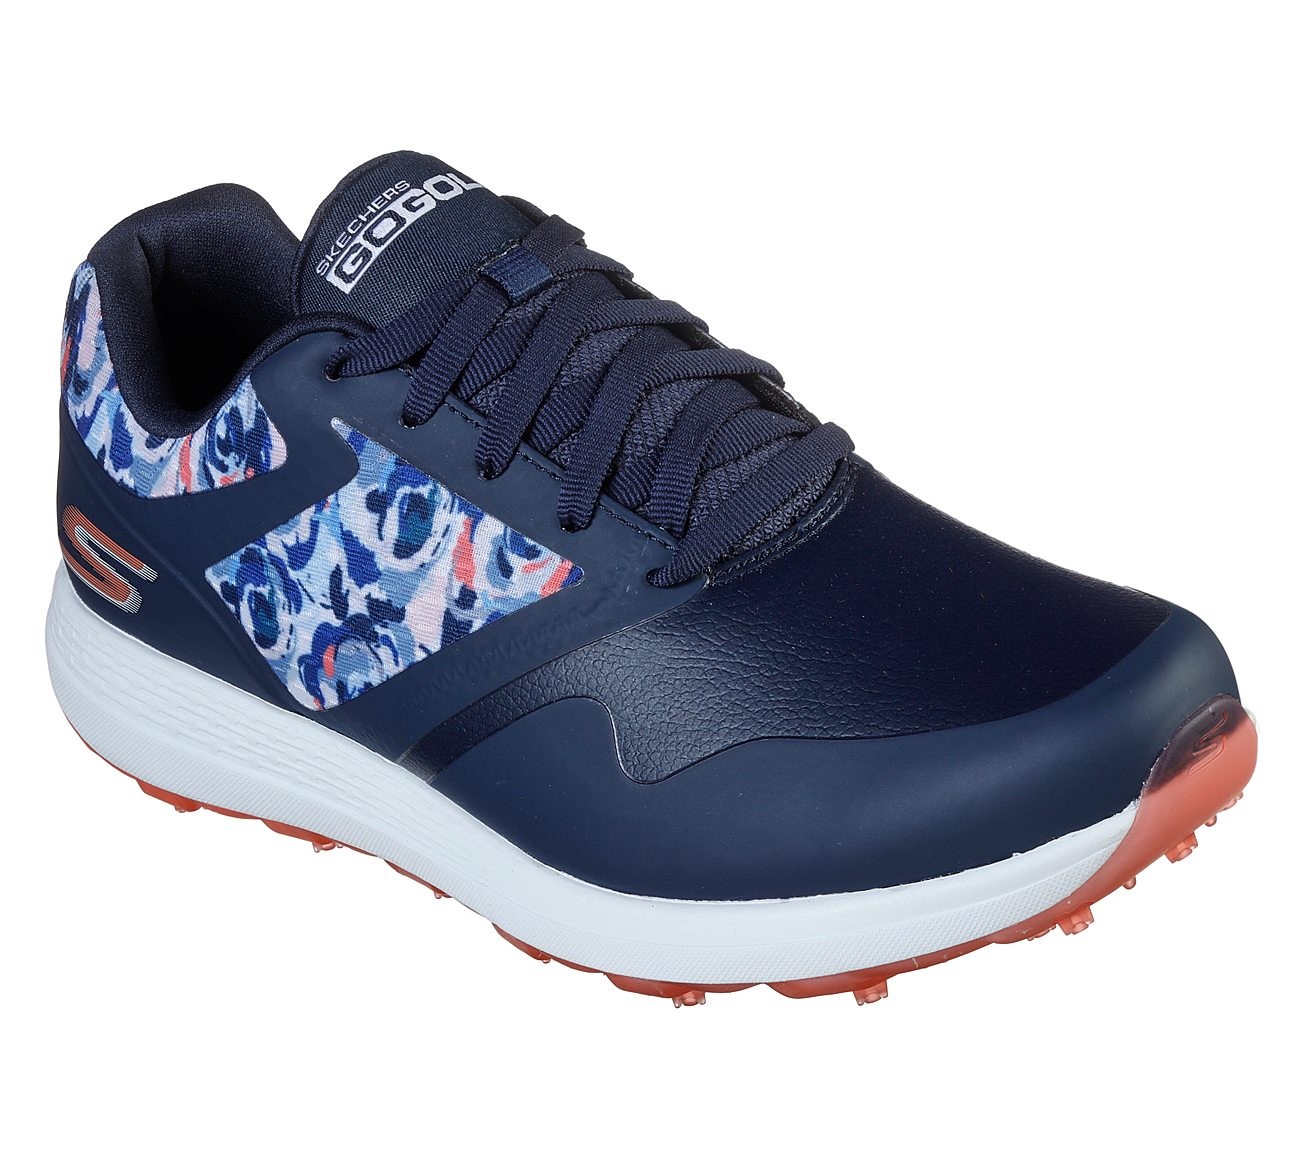 Skechers GO GOLF Max - Draw